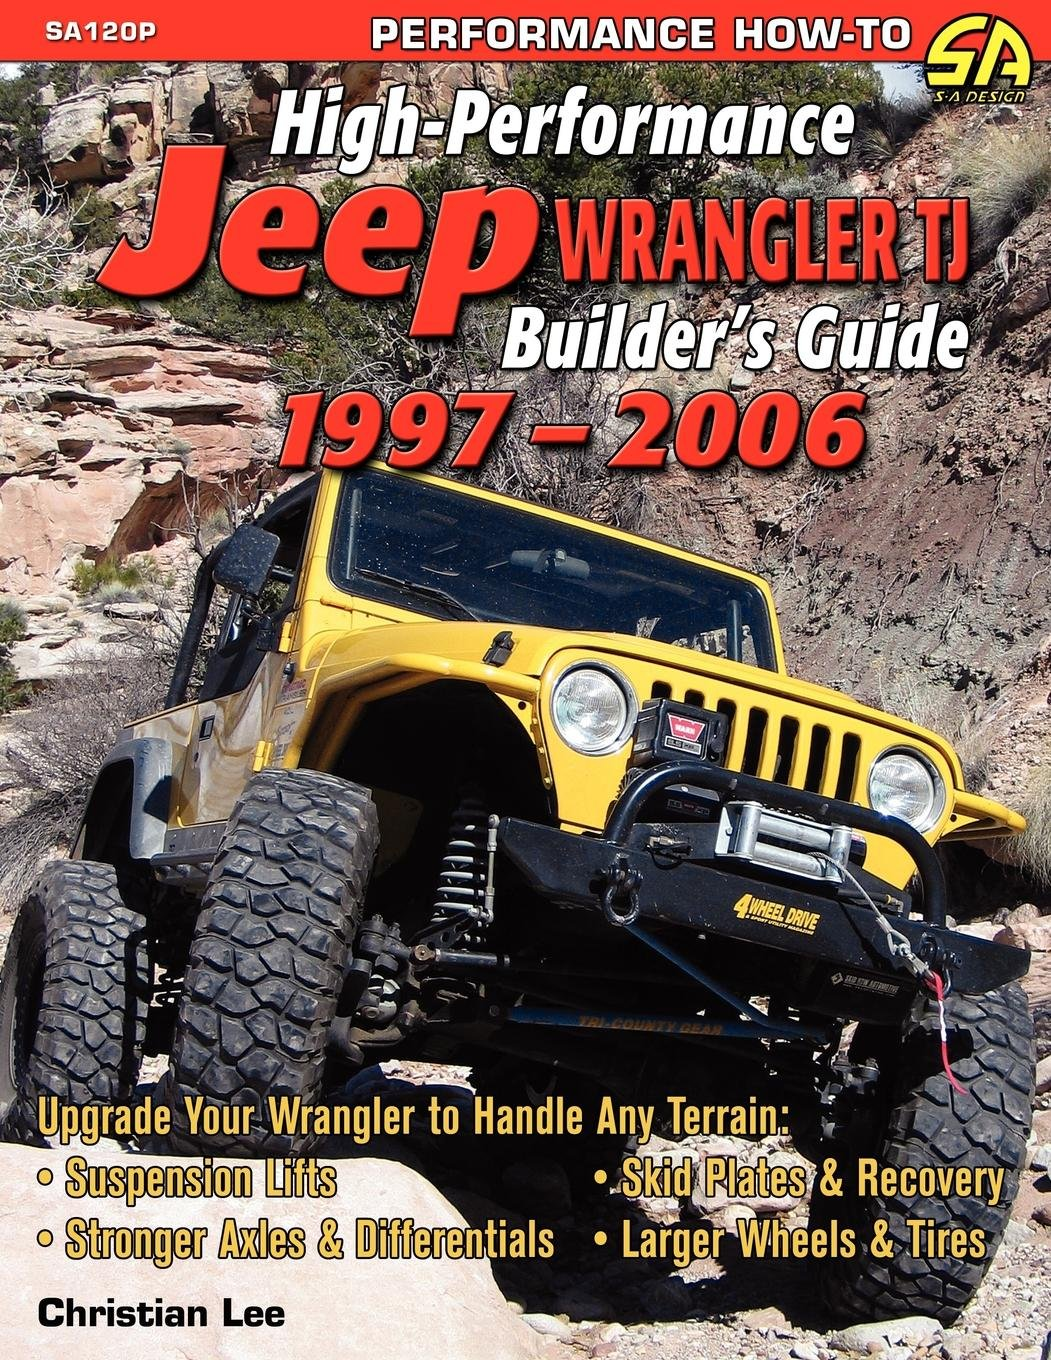 High-Performance Jeep Wrangler Builder's Guide 1997-2006: Christian Lee:  9781613250273: Amazon.com: Books